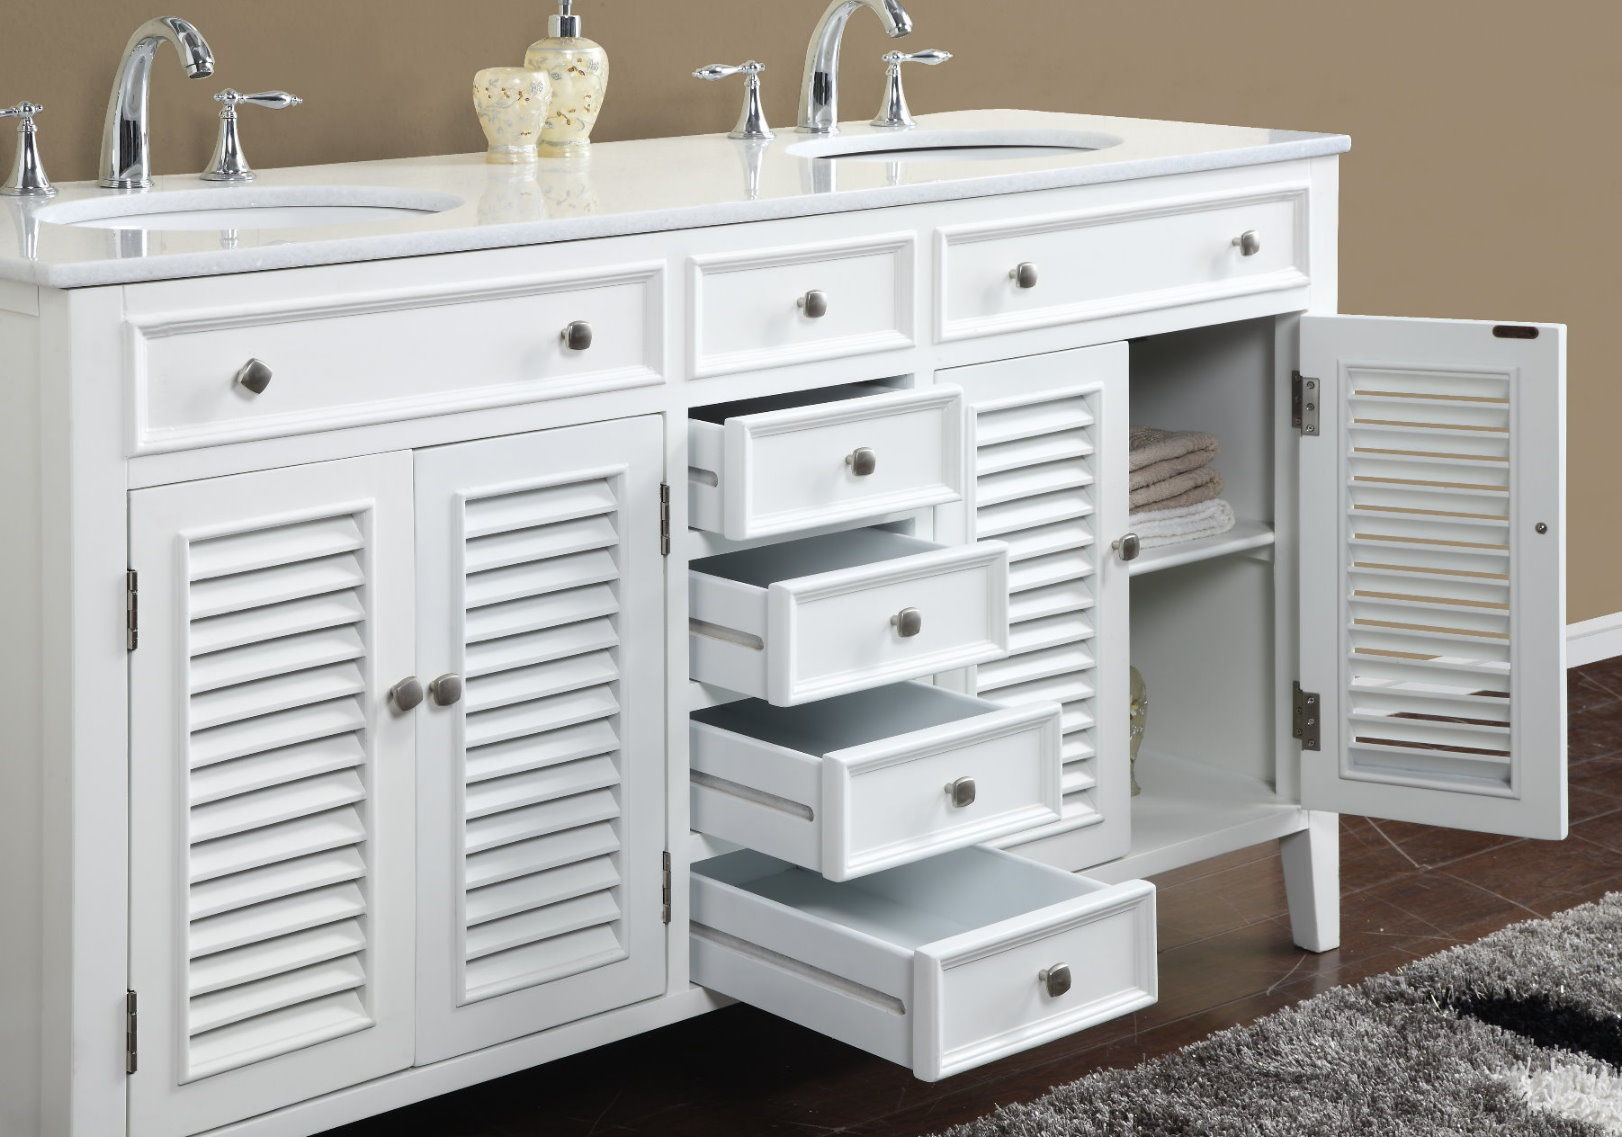 sink incredible for ideas vanity over inches charming cabinets amusing vanities decor less decoration double vibrant home bathroom remarkable inch